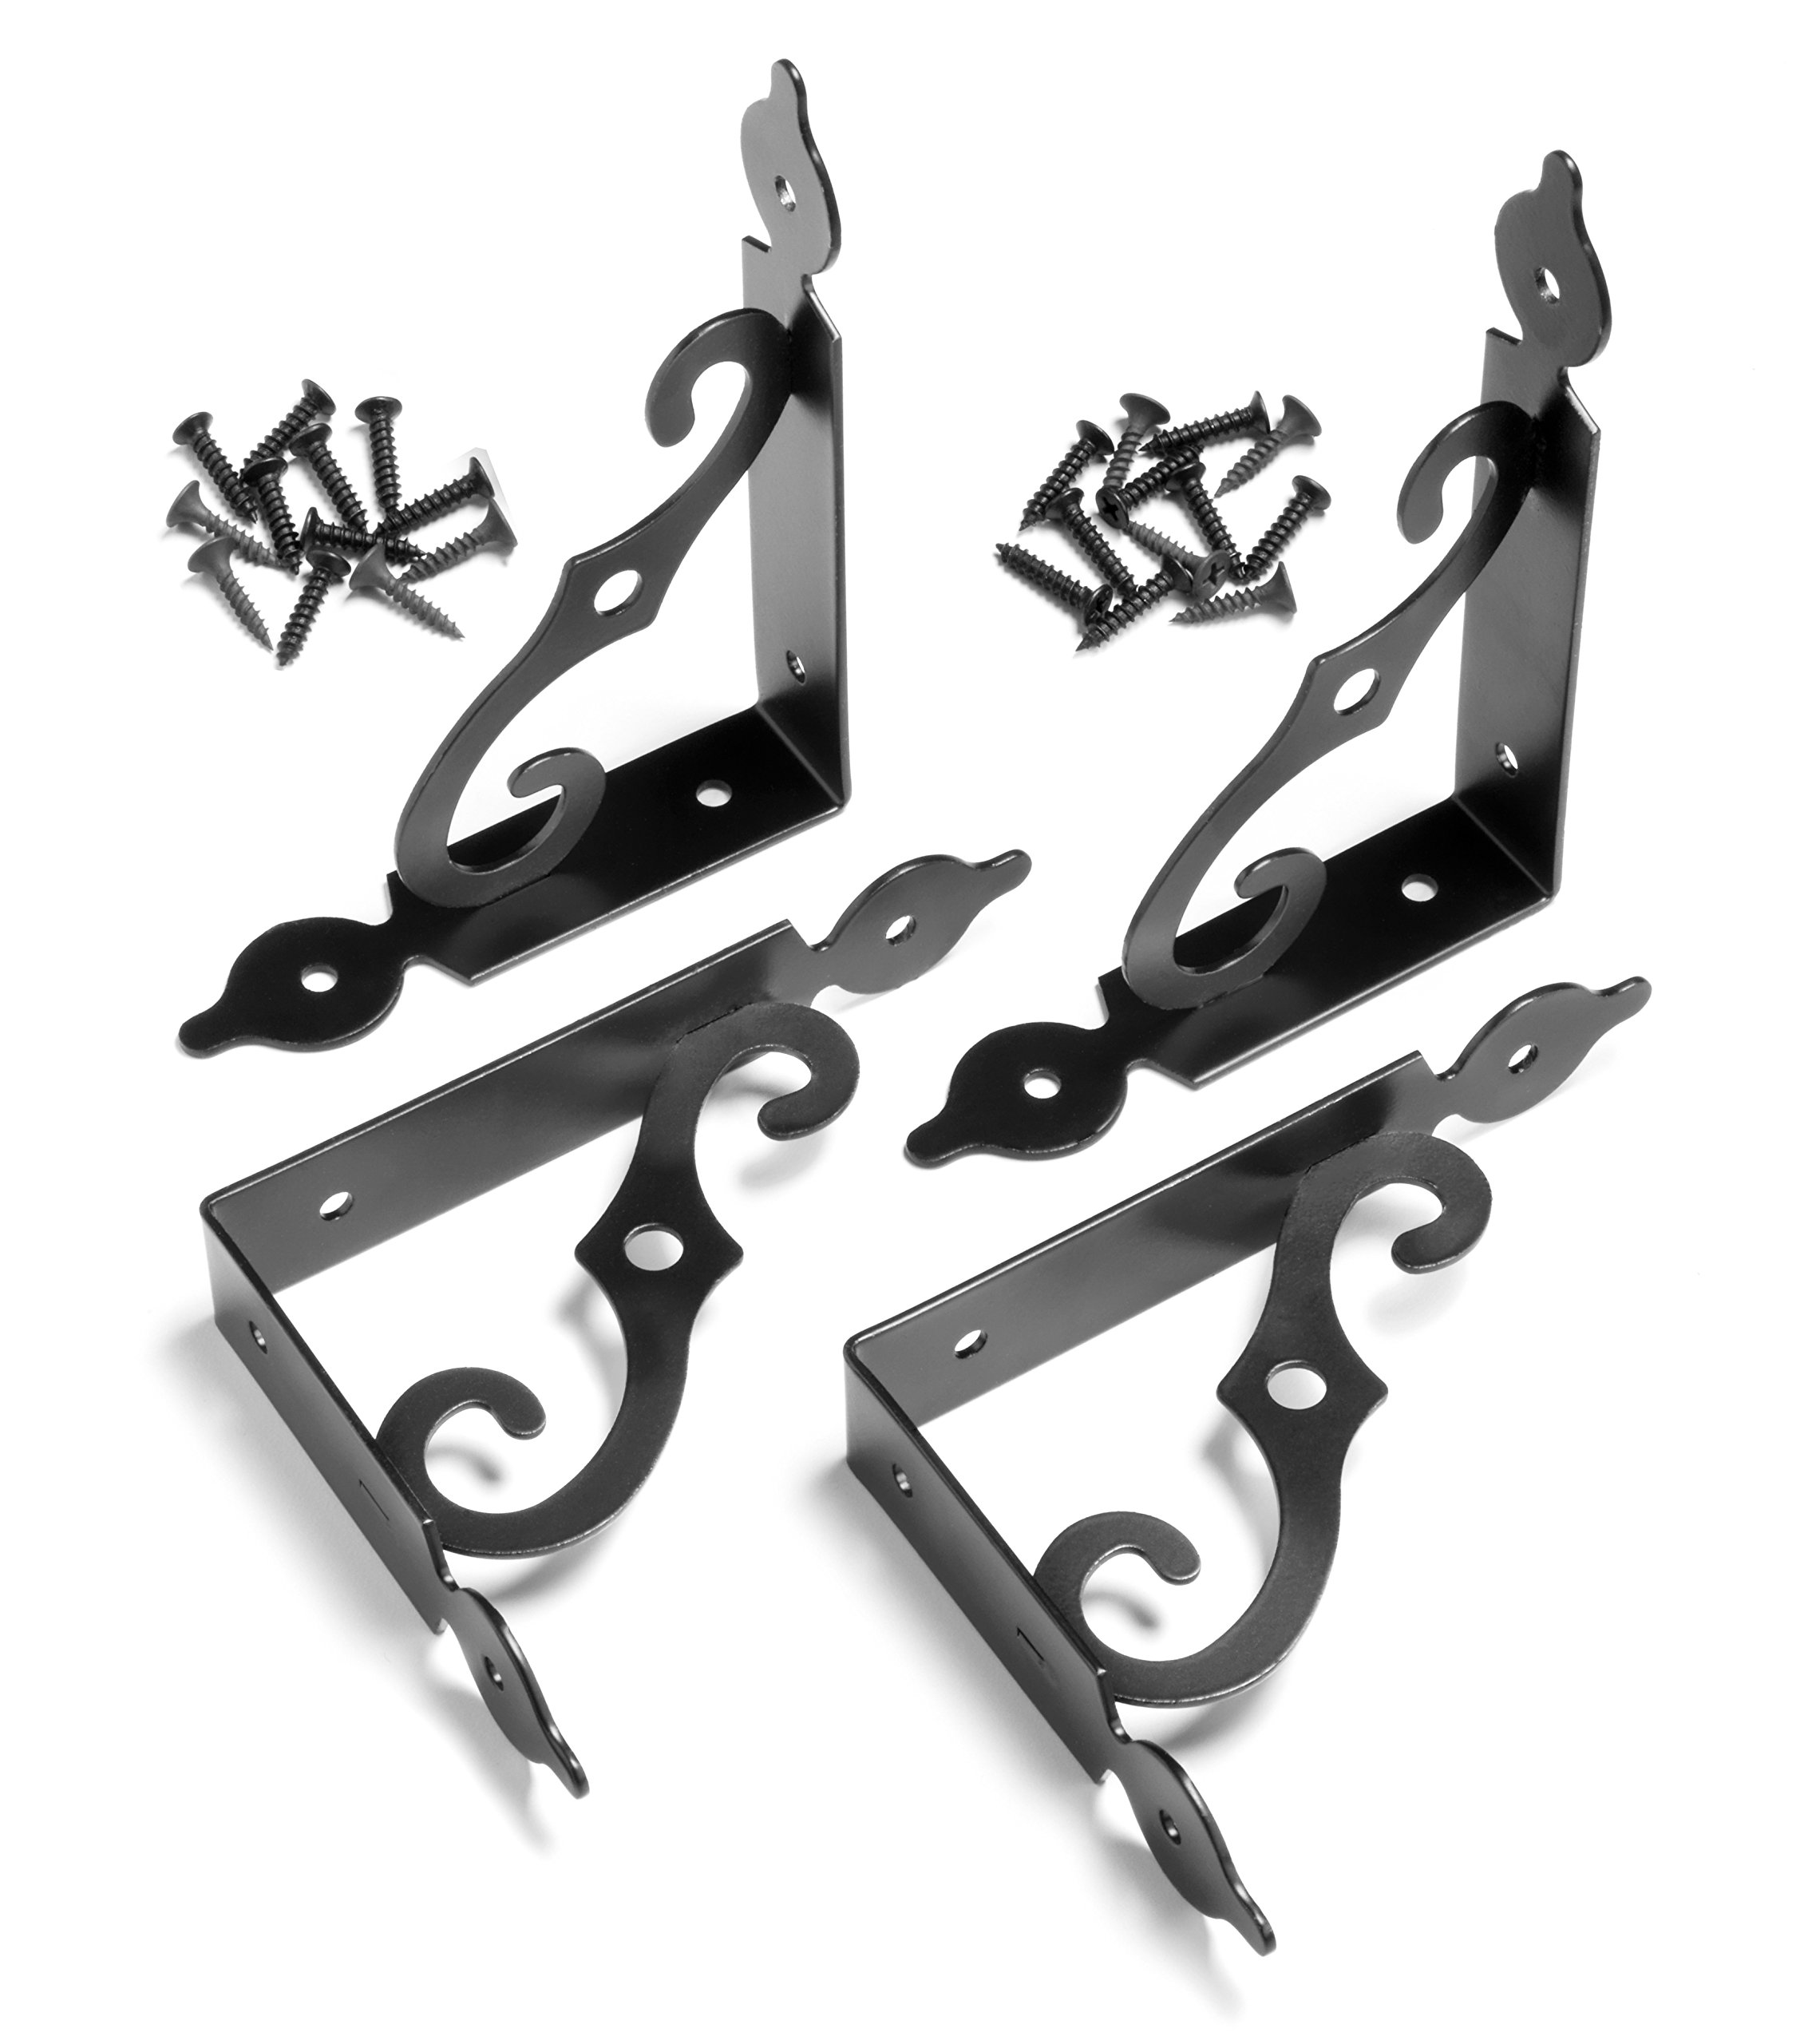 Black Decorative Shelf Brackets with Hardware - Pack of 4 by Mark One Home Goods